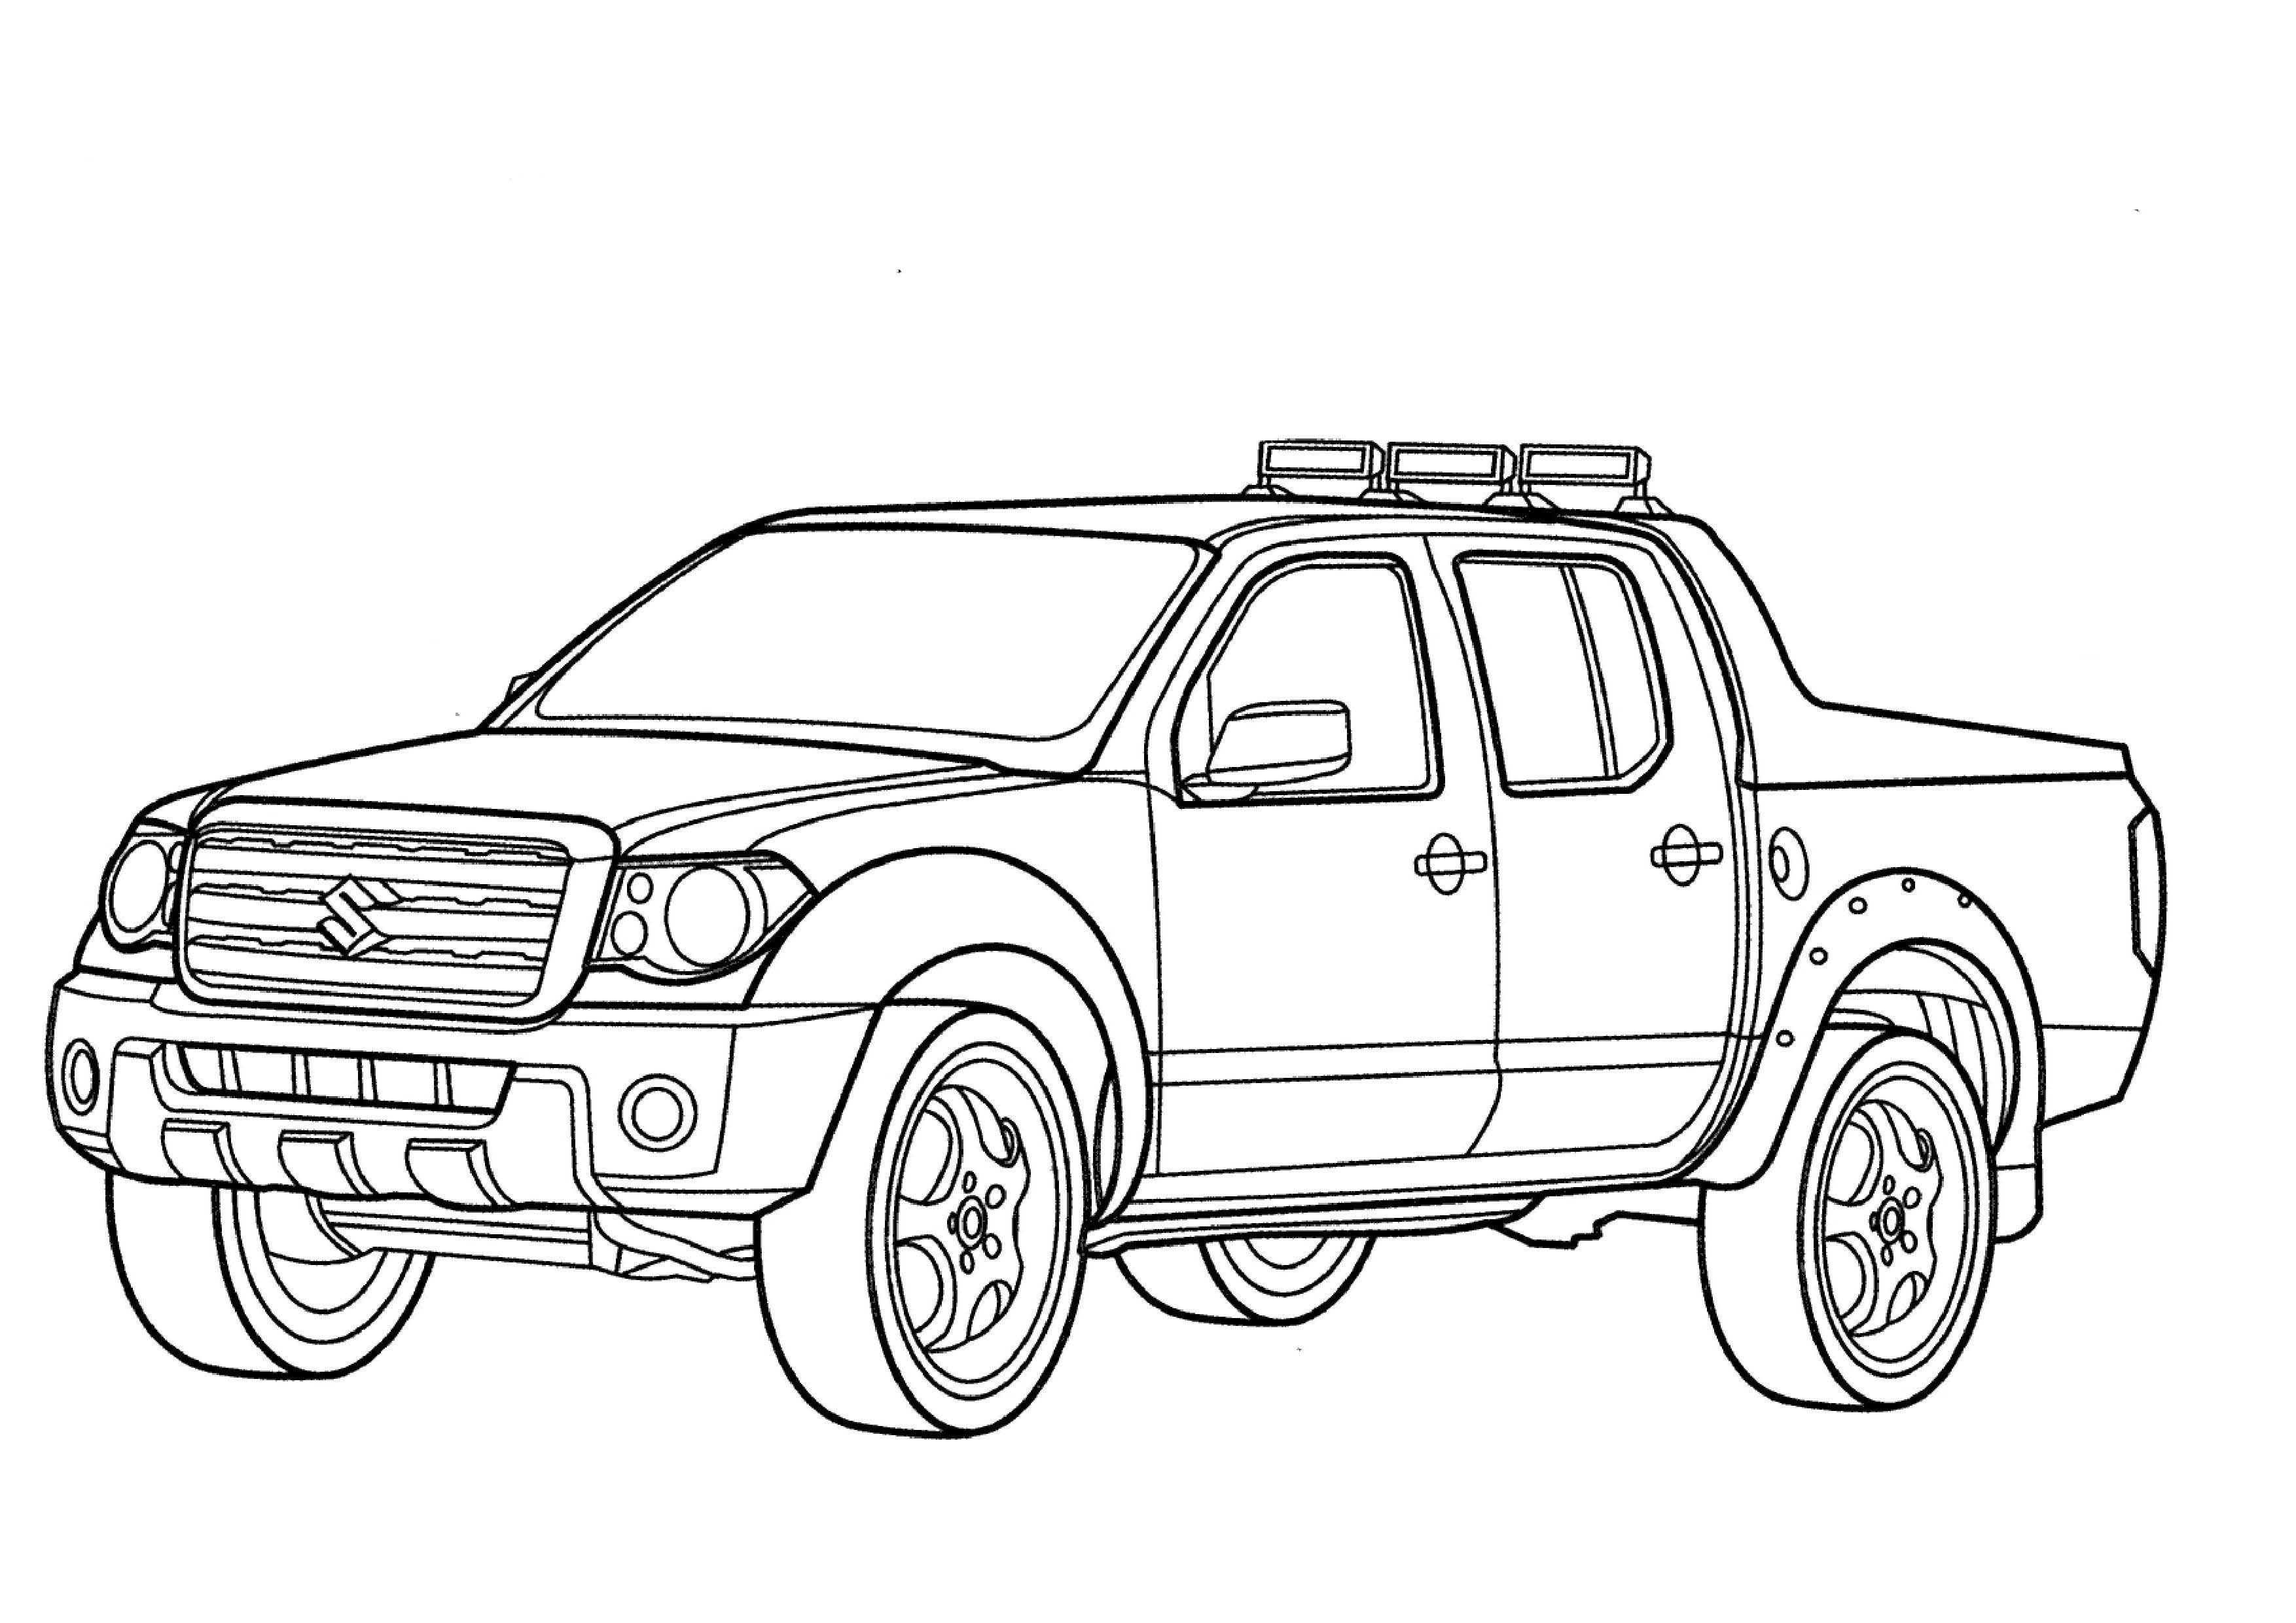 ford truck coloring pages Download-Ford F250 Coloring Pages Special ford Truck Coloring Pages Prices Reviews and 1-k